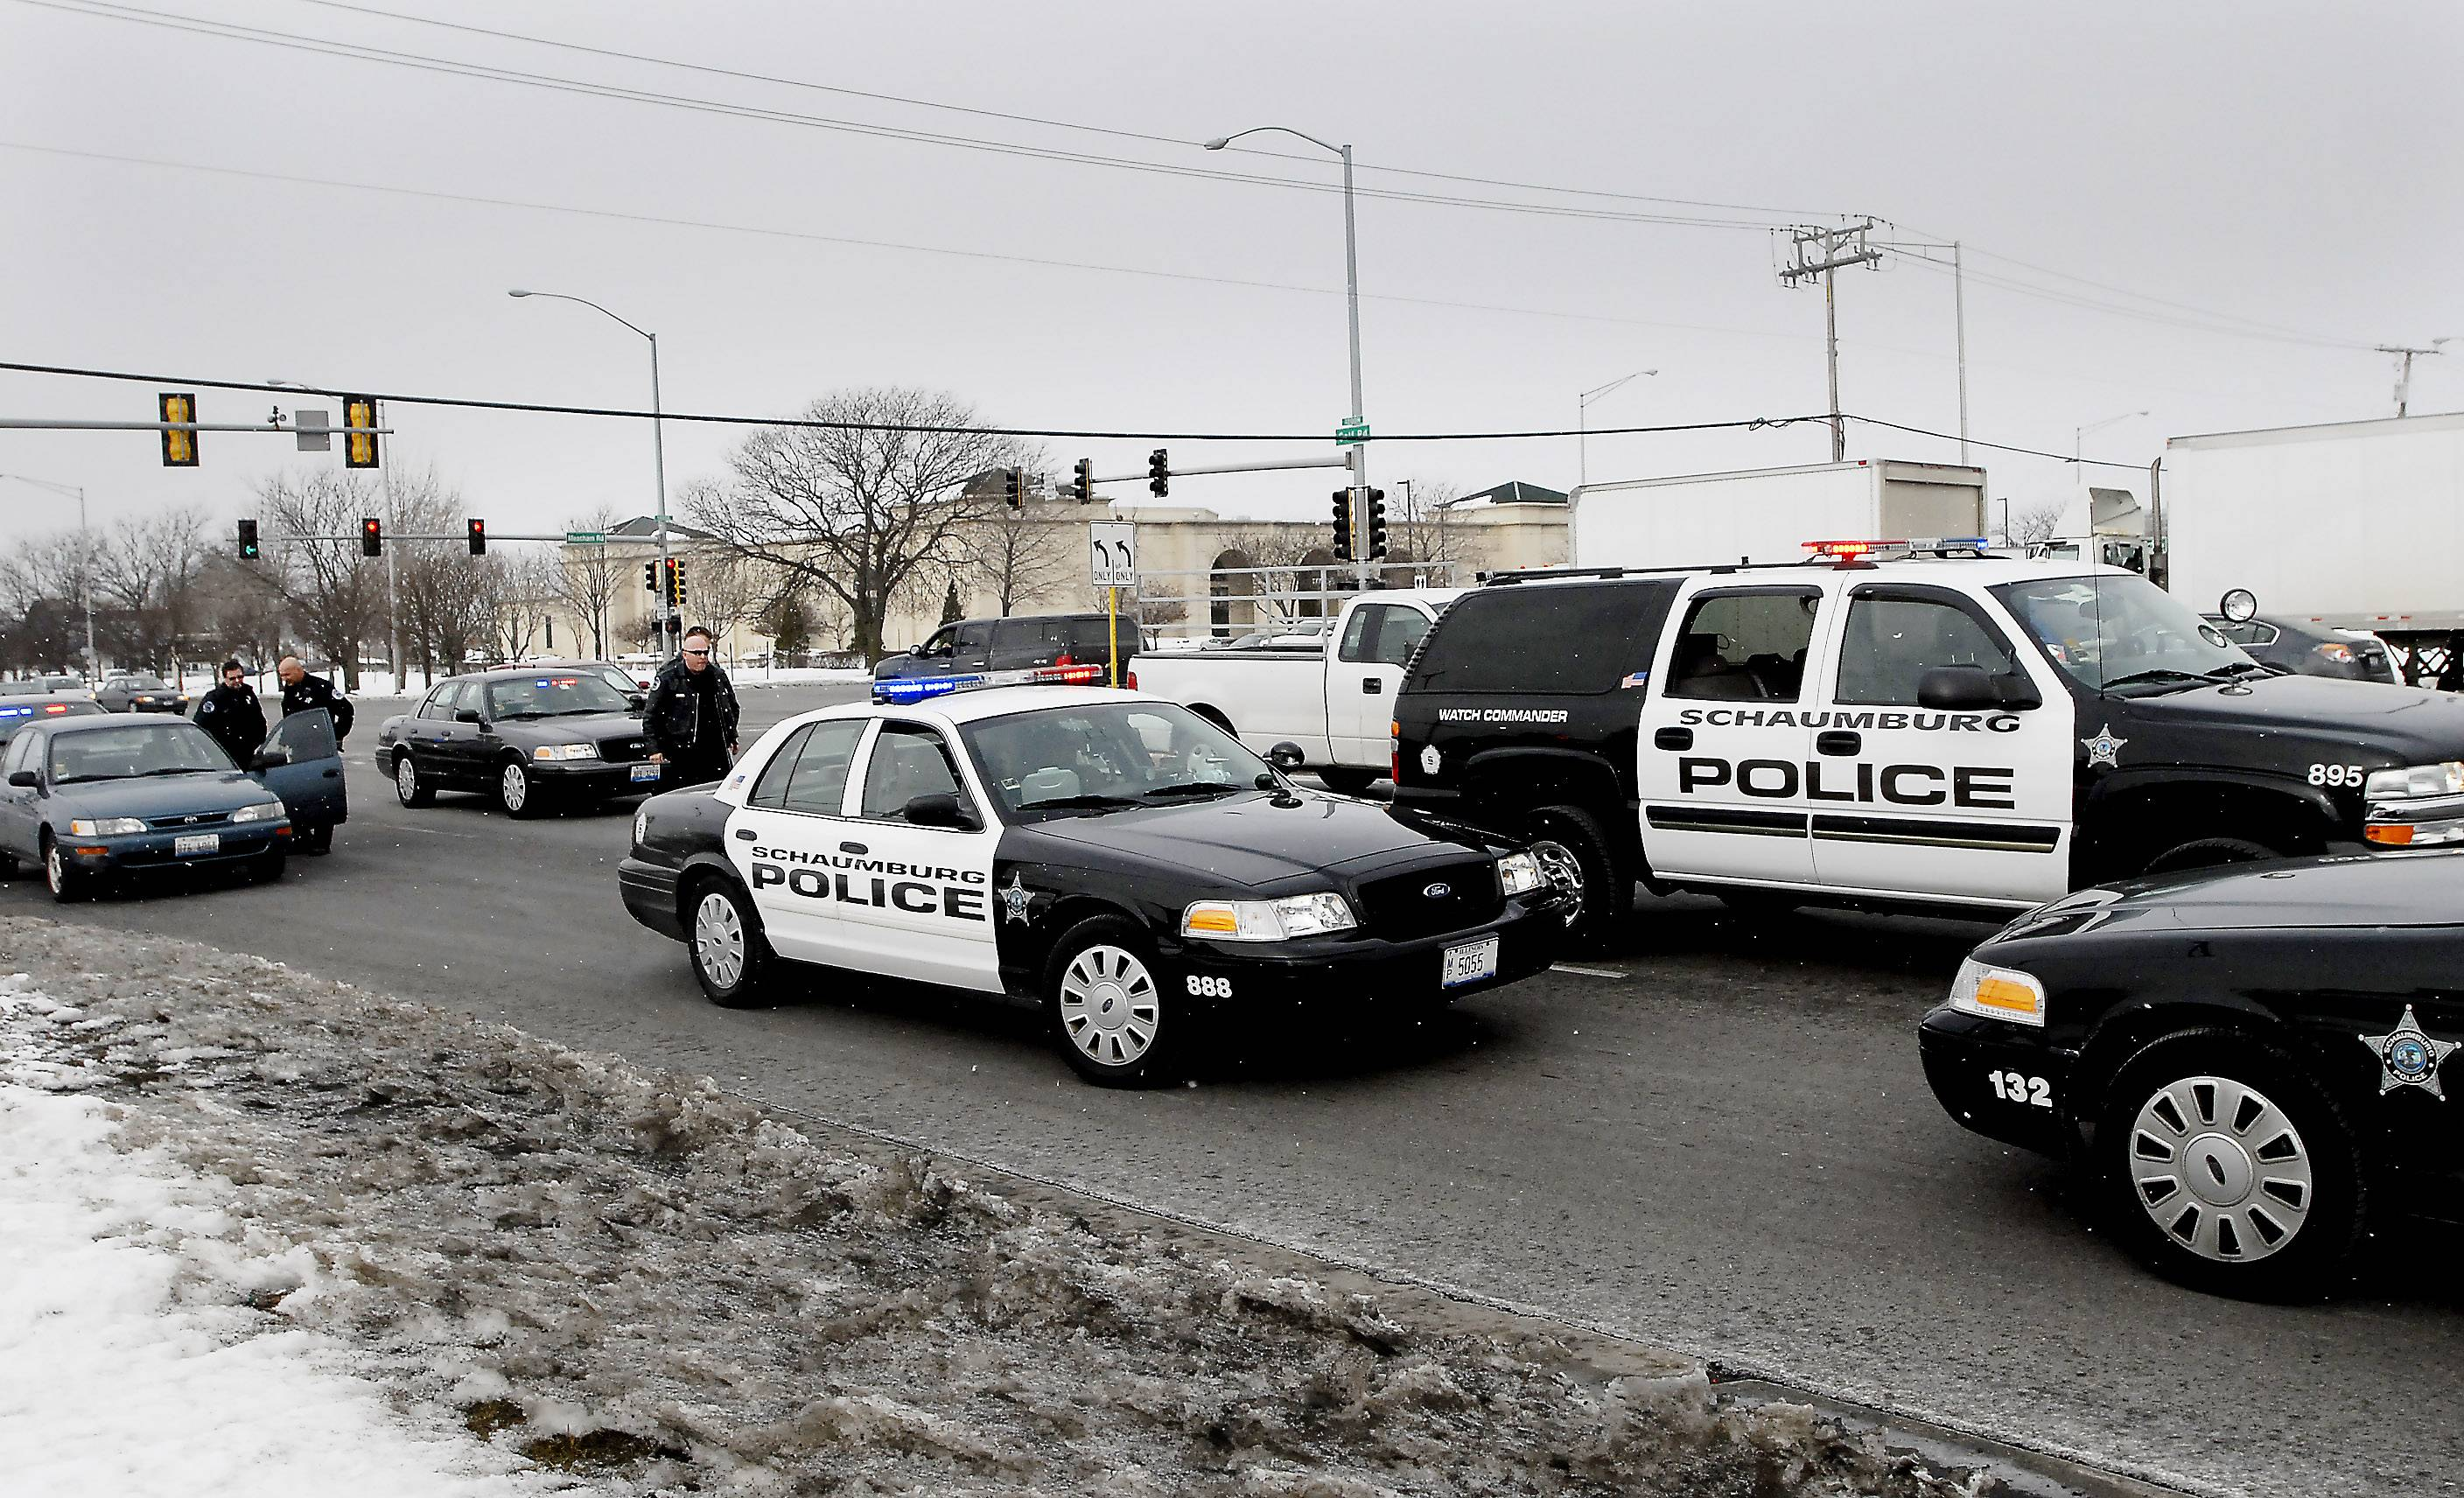 Suburban taxpayers could wind up covering $76 million police pension shortfall